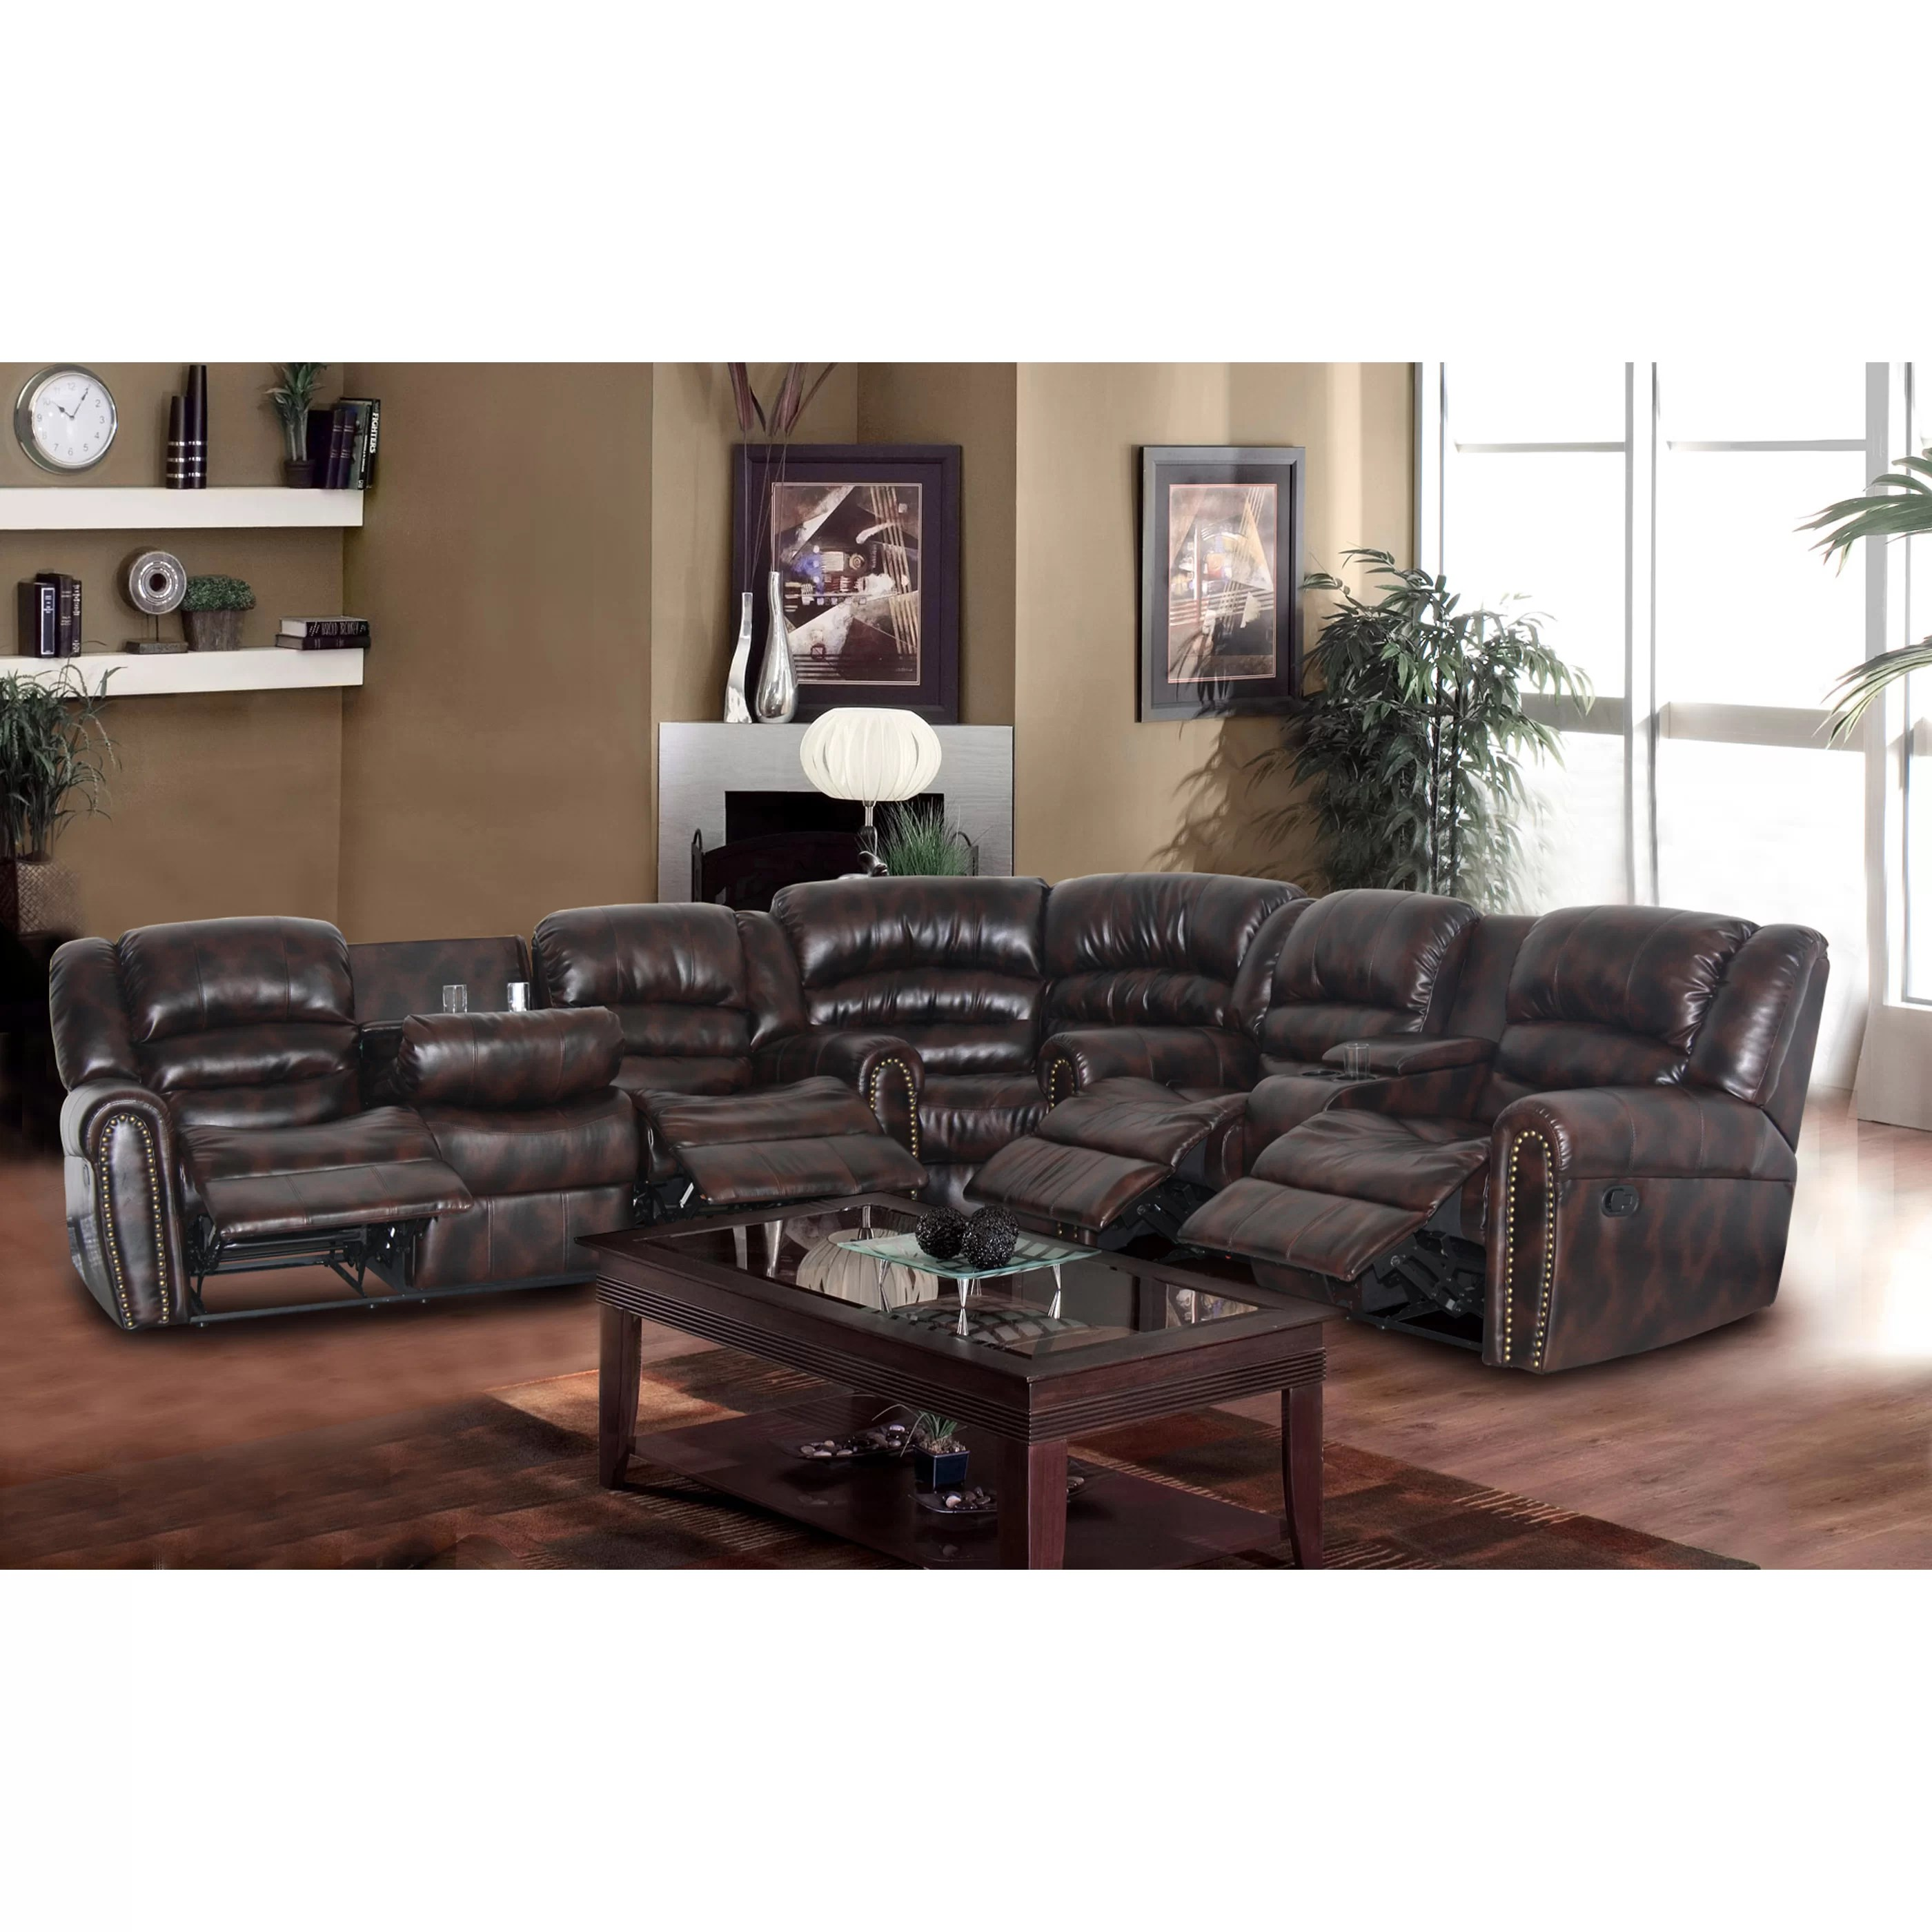 nora brown leather reclining 3 pc living room sofa set dark grey styling beverly fine furniture sophy sectional and reviews wayfair